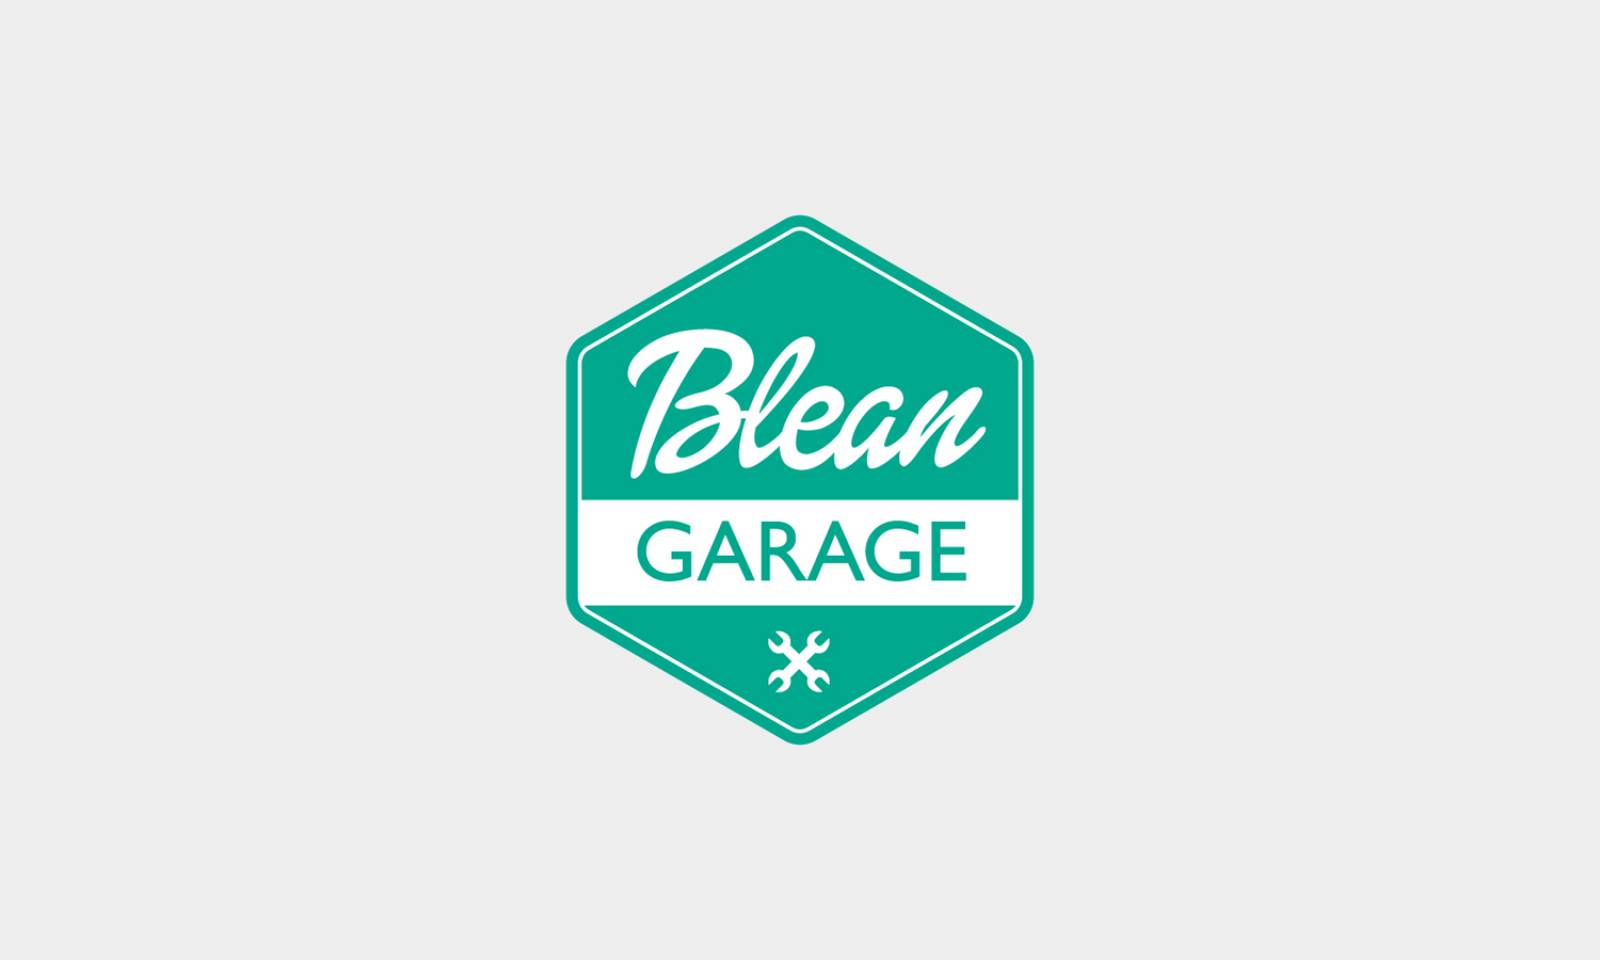 logo-Blean-corporate-identity-agency-graphic-design-canterbury.jpg